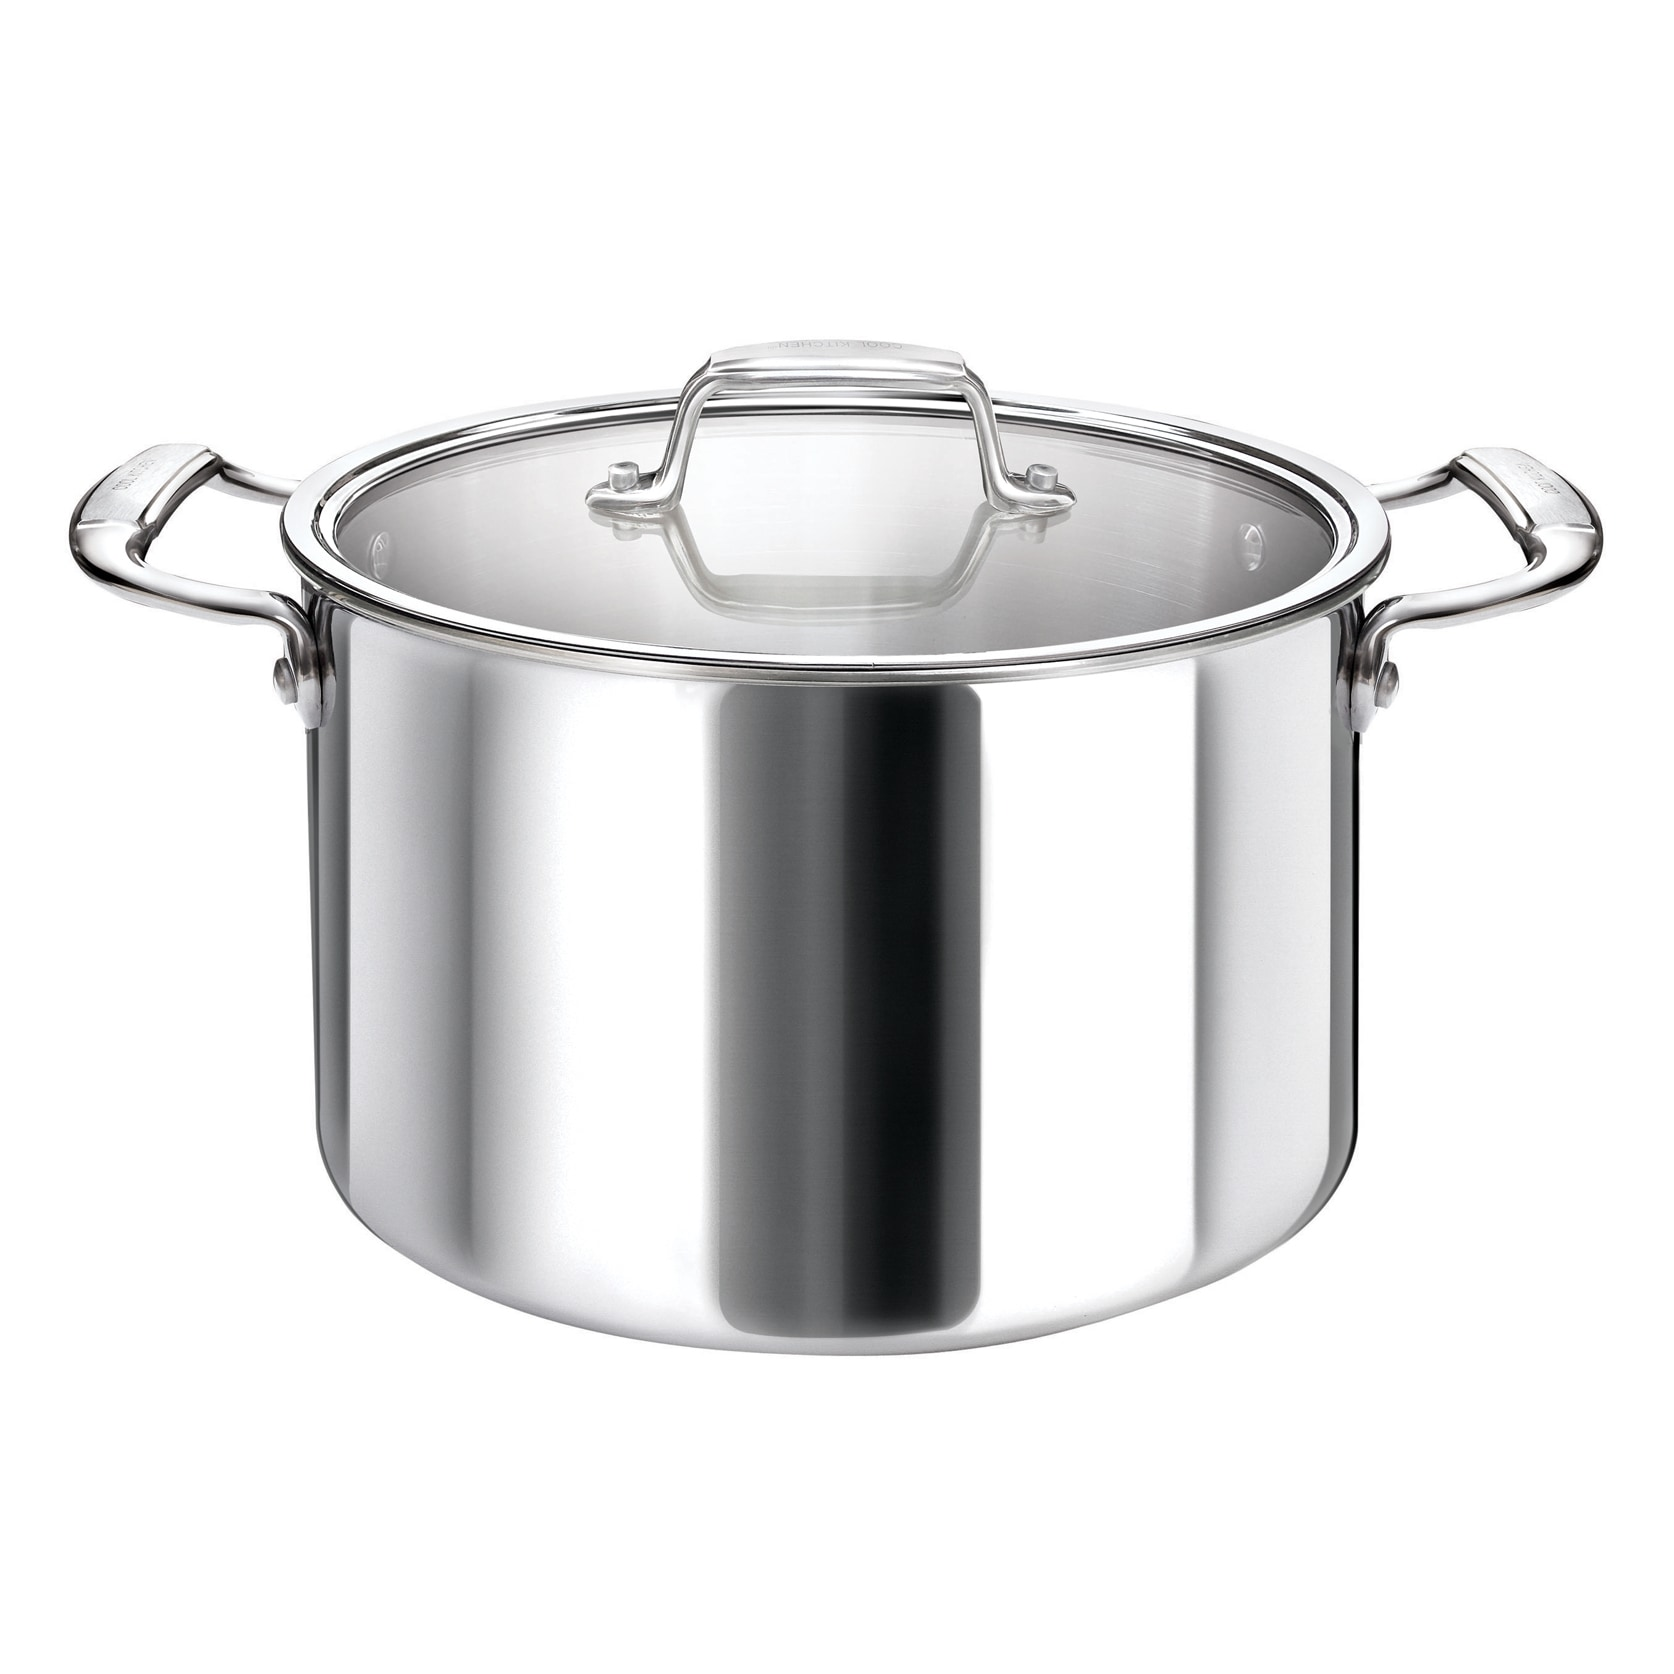 Overstock.com Cool Kitchen Tri-Ply Stainless Steel Stock Pot with High Polish Mirror Finish at Sears.com